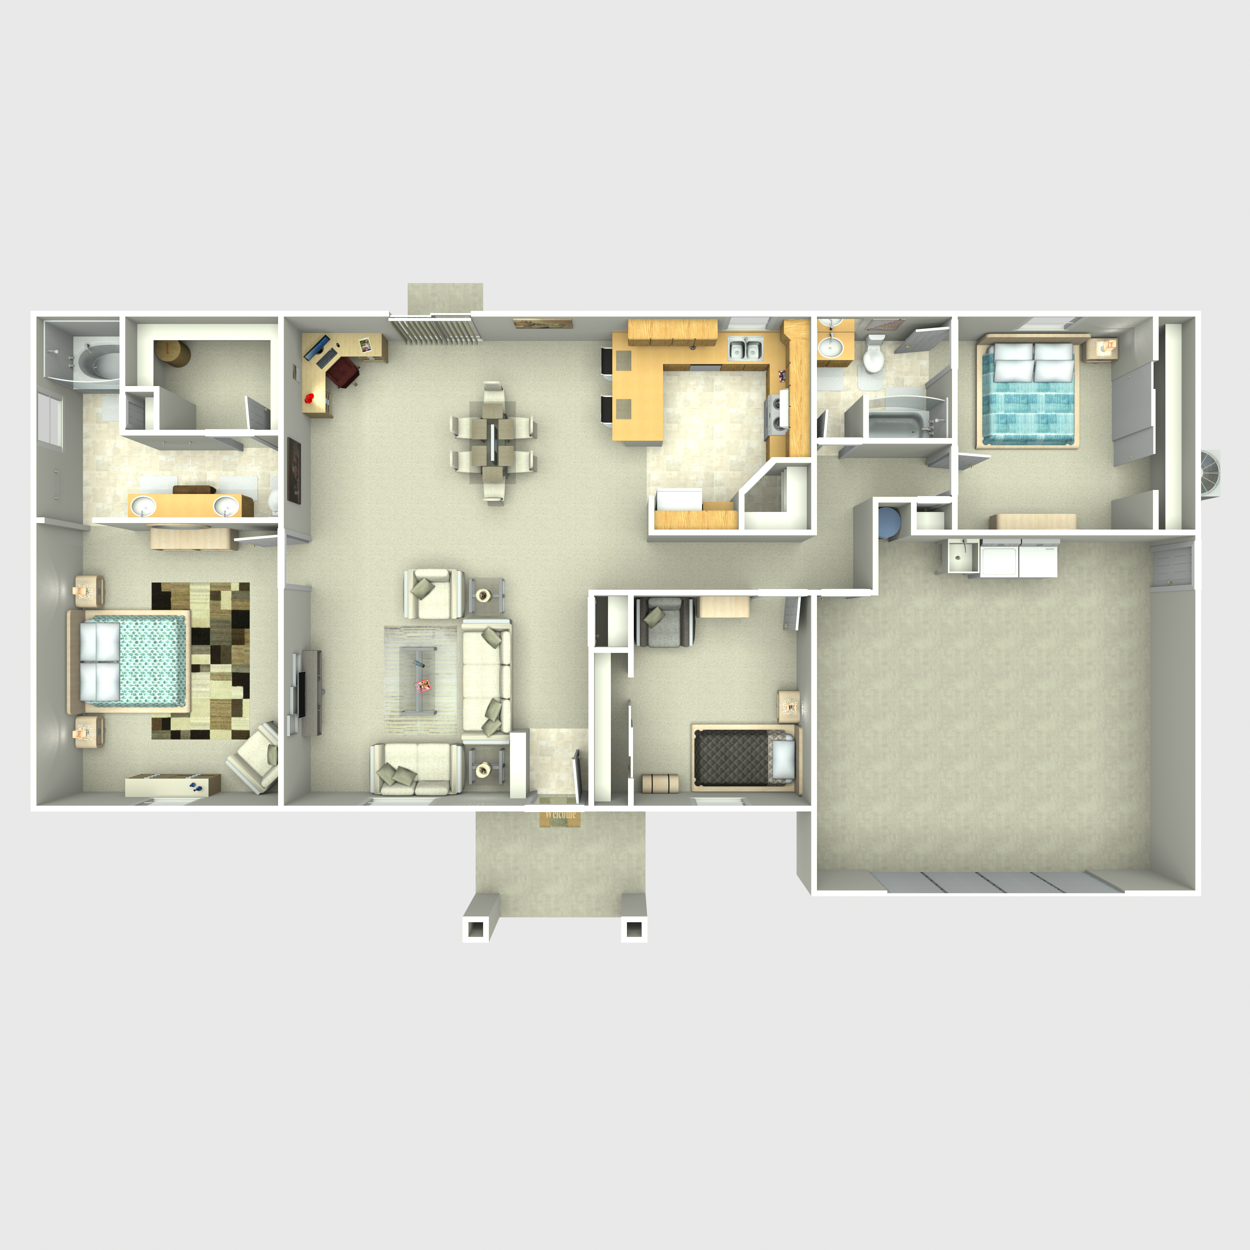 Floor plan image of Silver Carmel